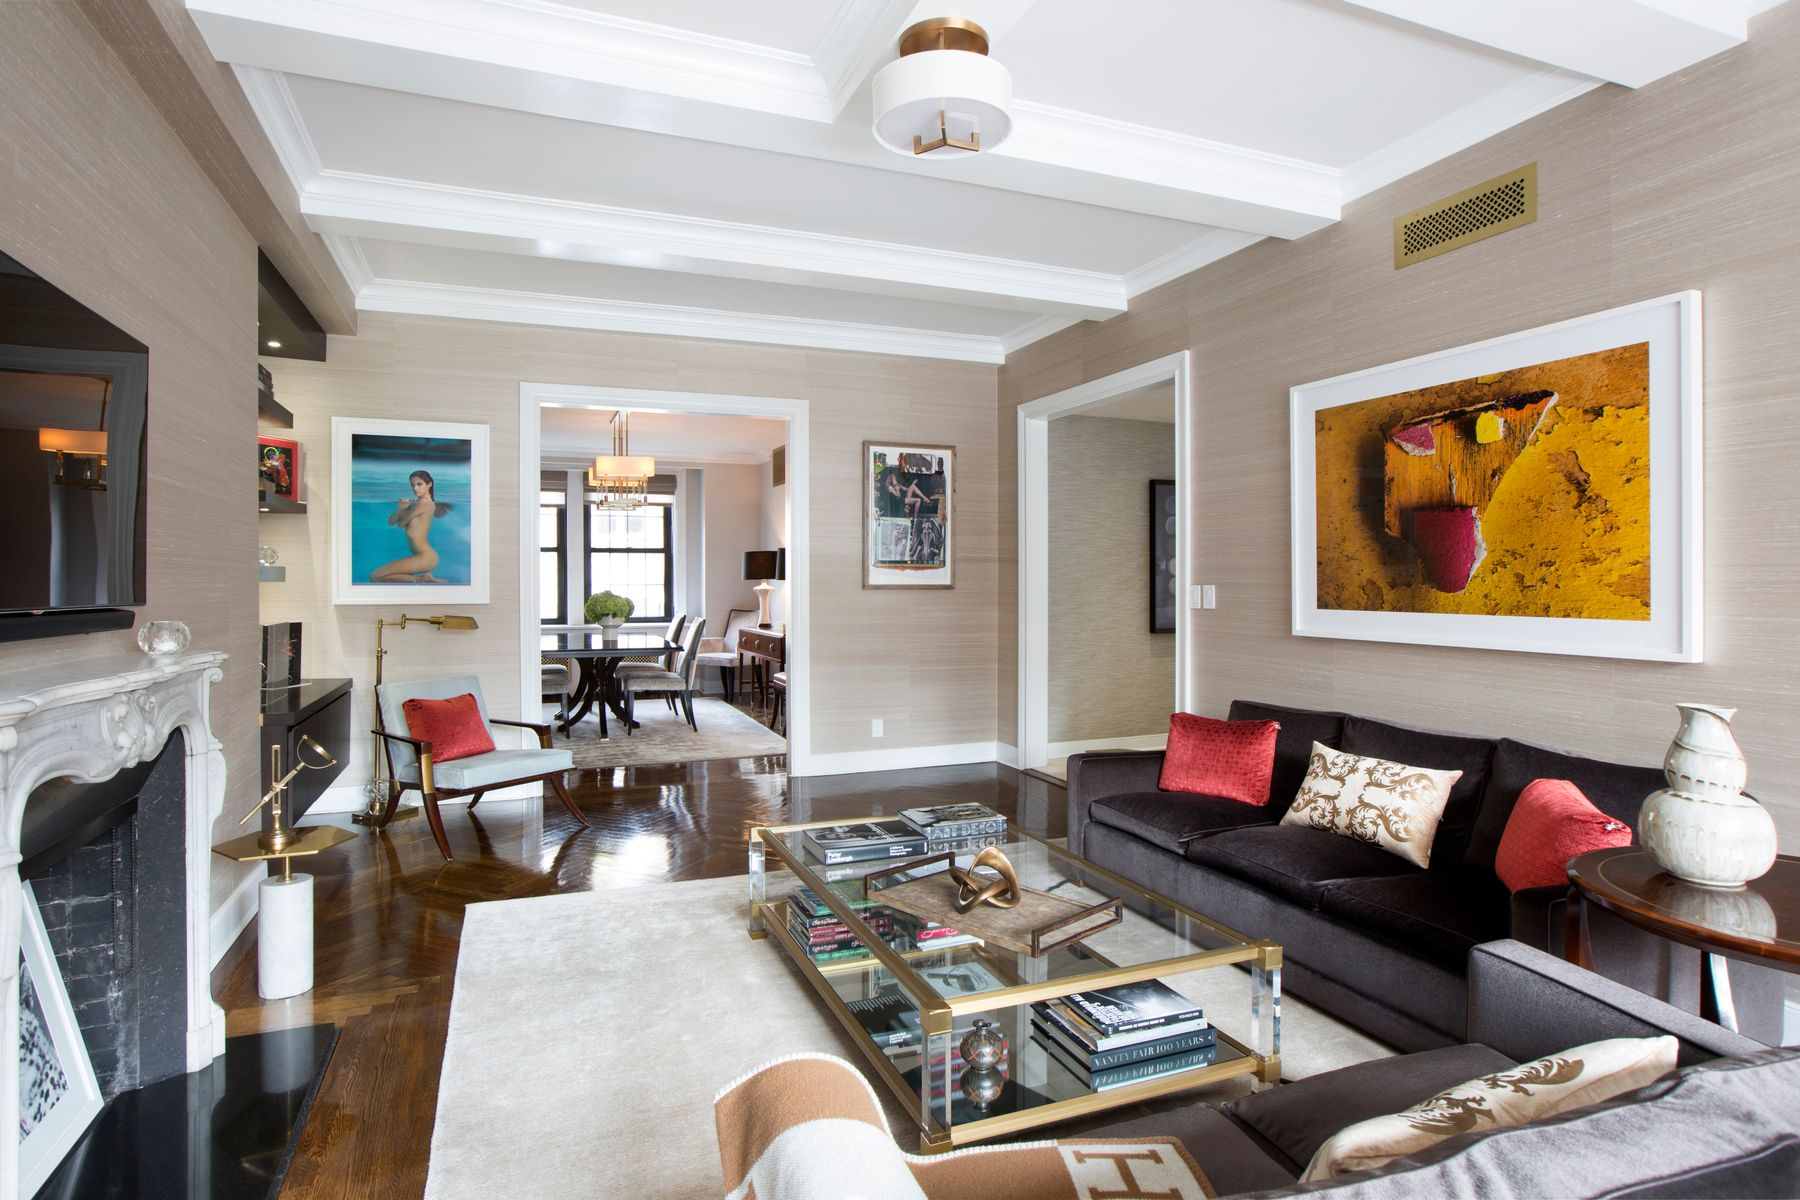 Martine Capdevielle_Luxury Real Estate NYC_21 East 66th St Apt 5w 9.jpg